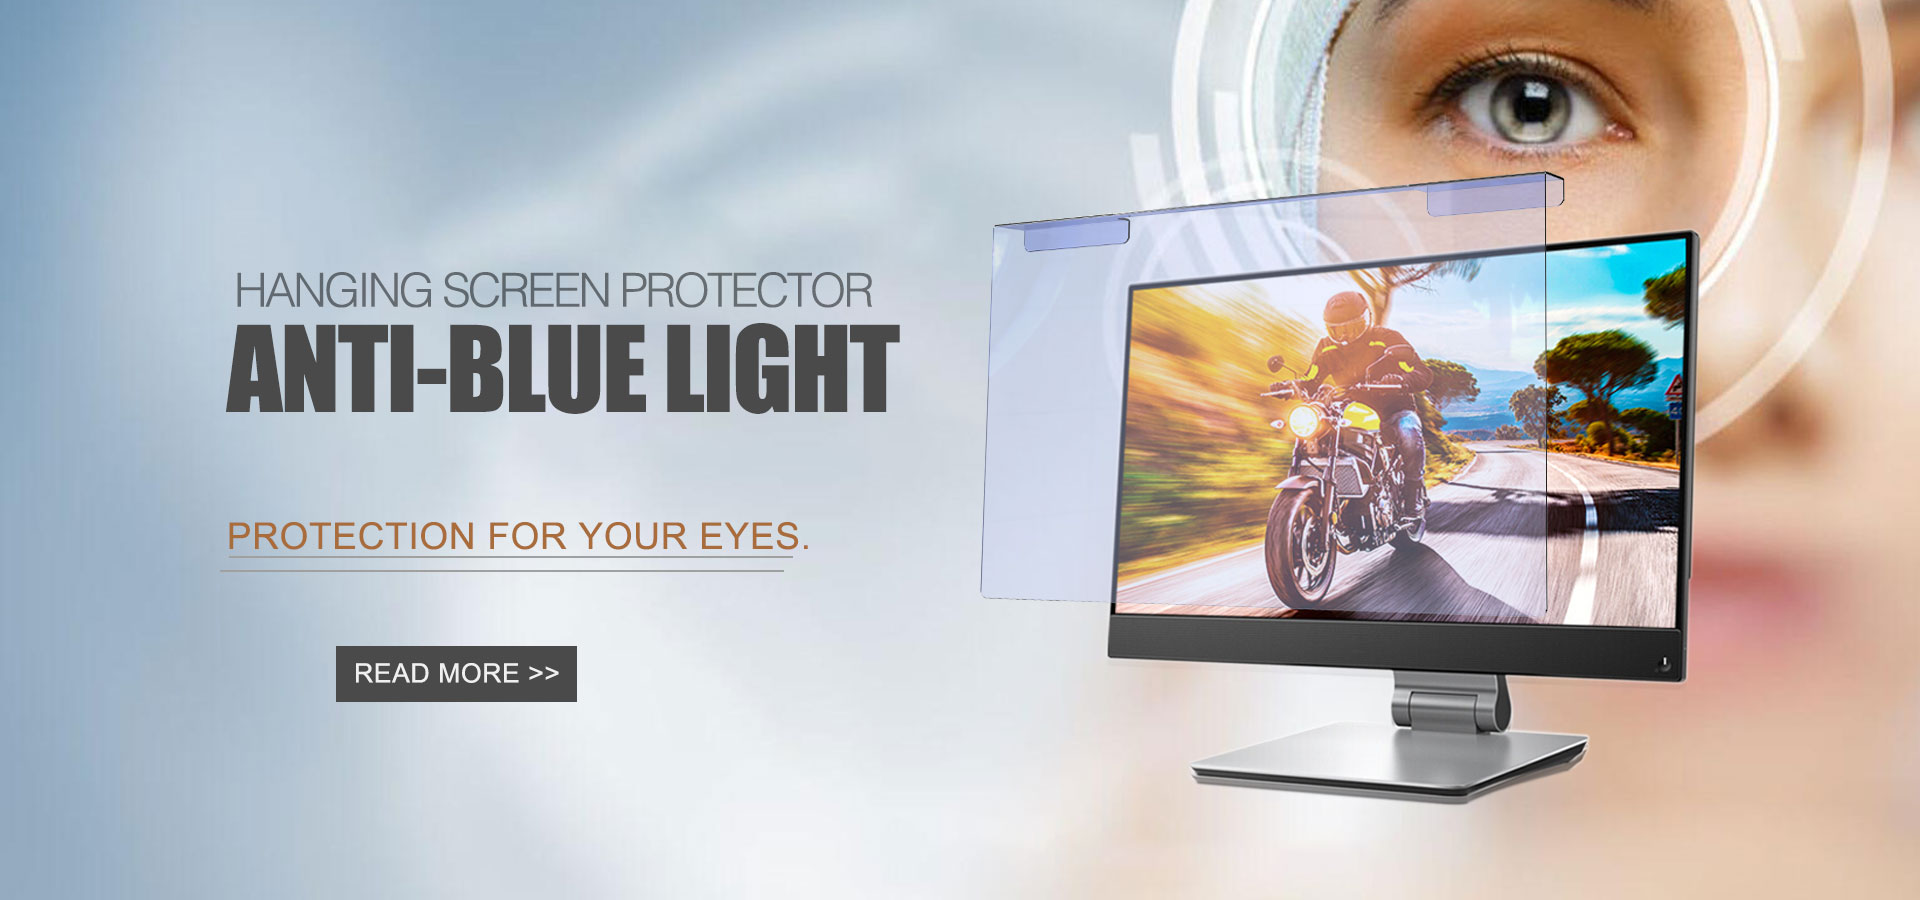 Blue light filter protect your eyes from the blue light. Get protection from blue light by ordering blue light filter from us.